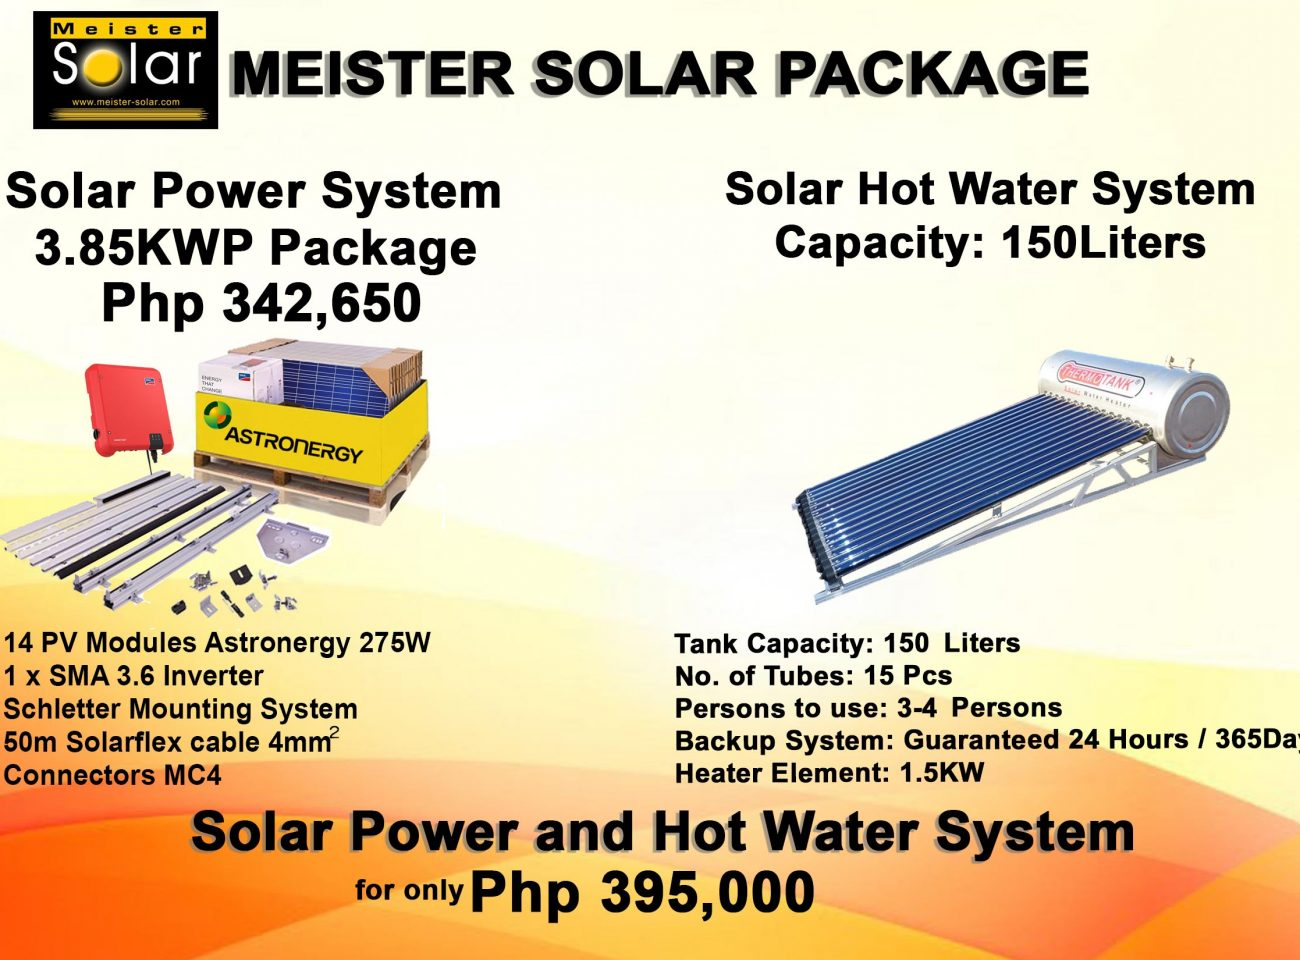 solar power and hotwater system